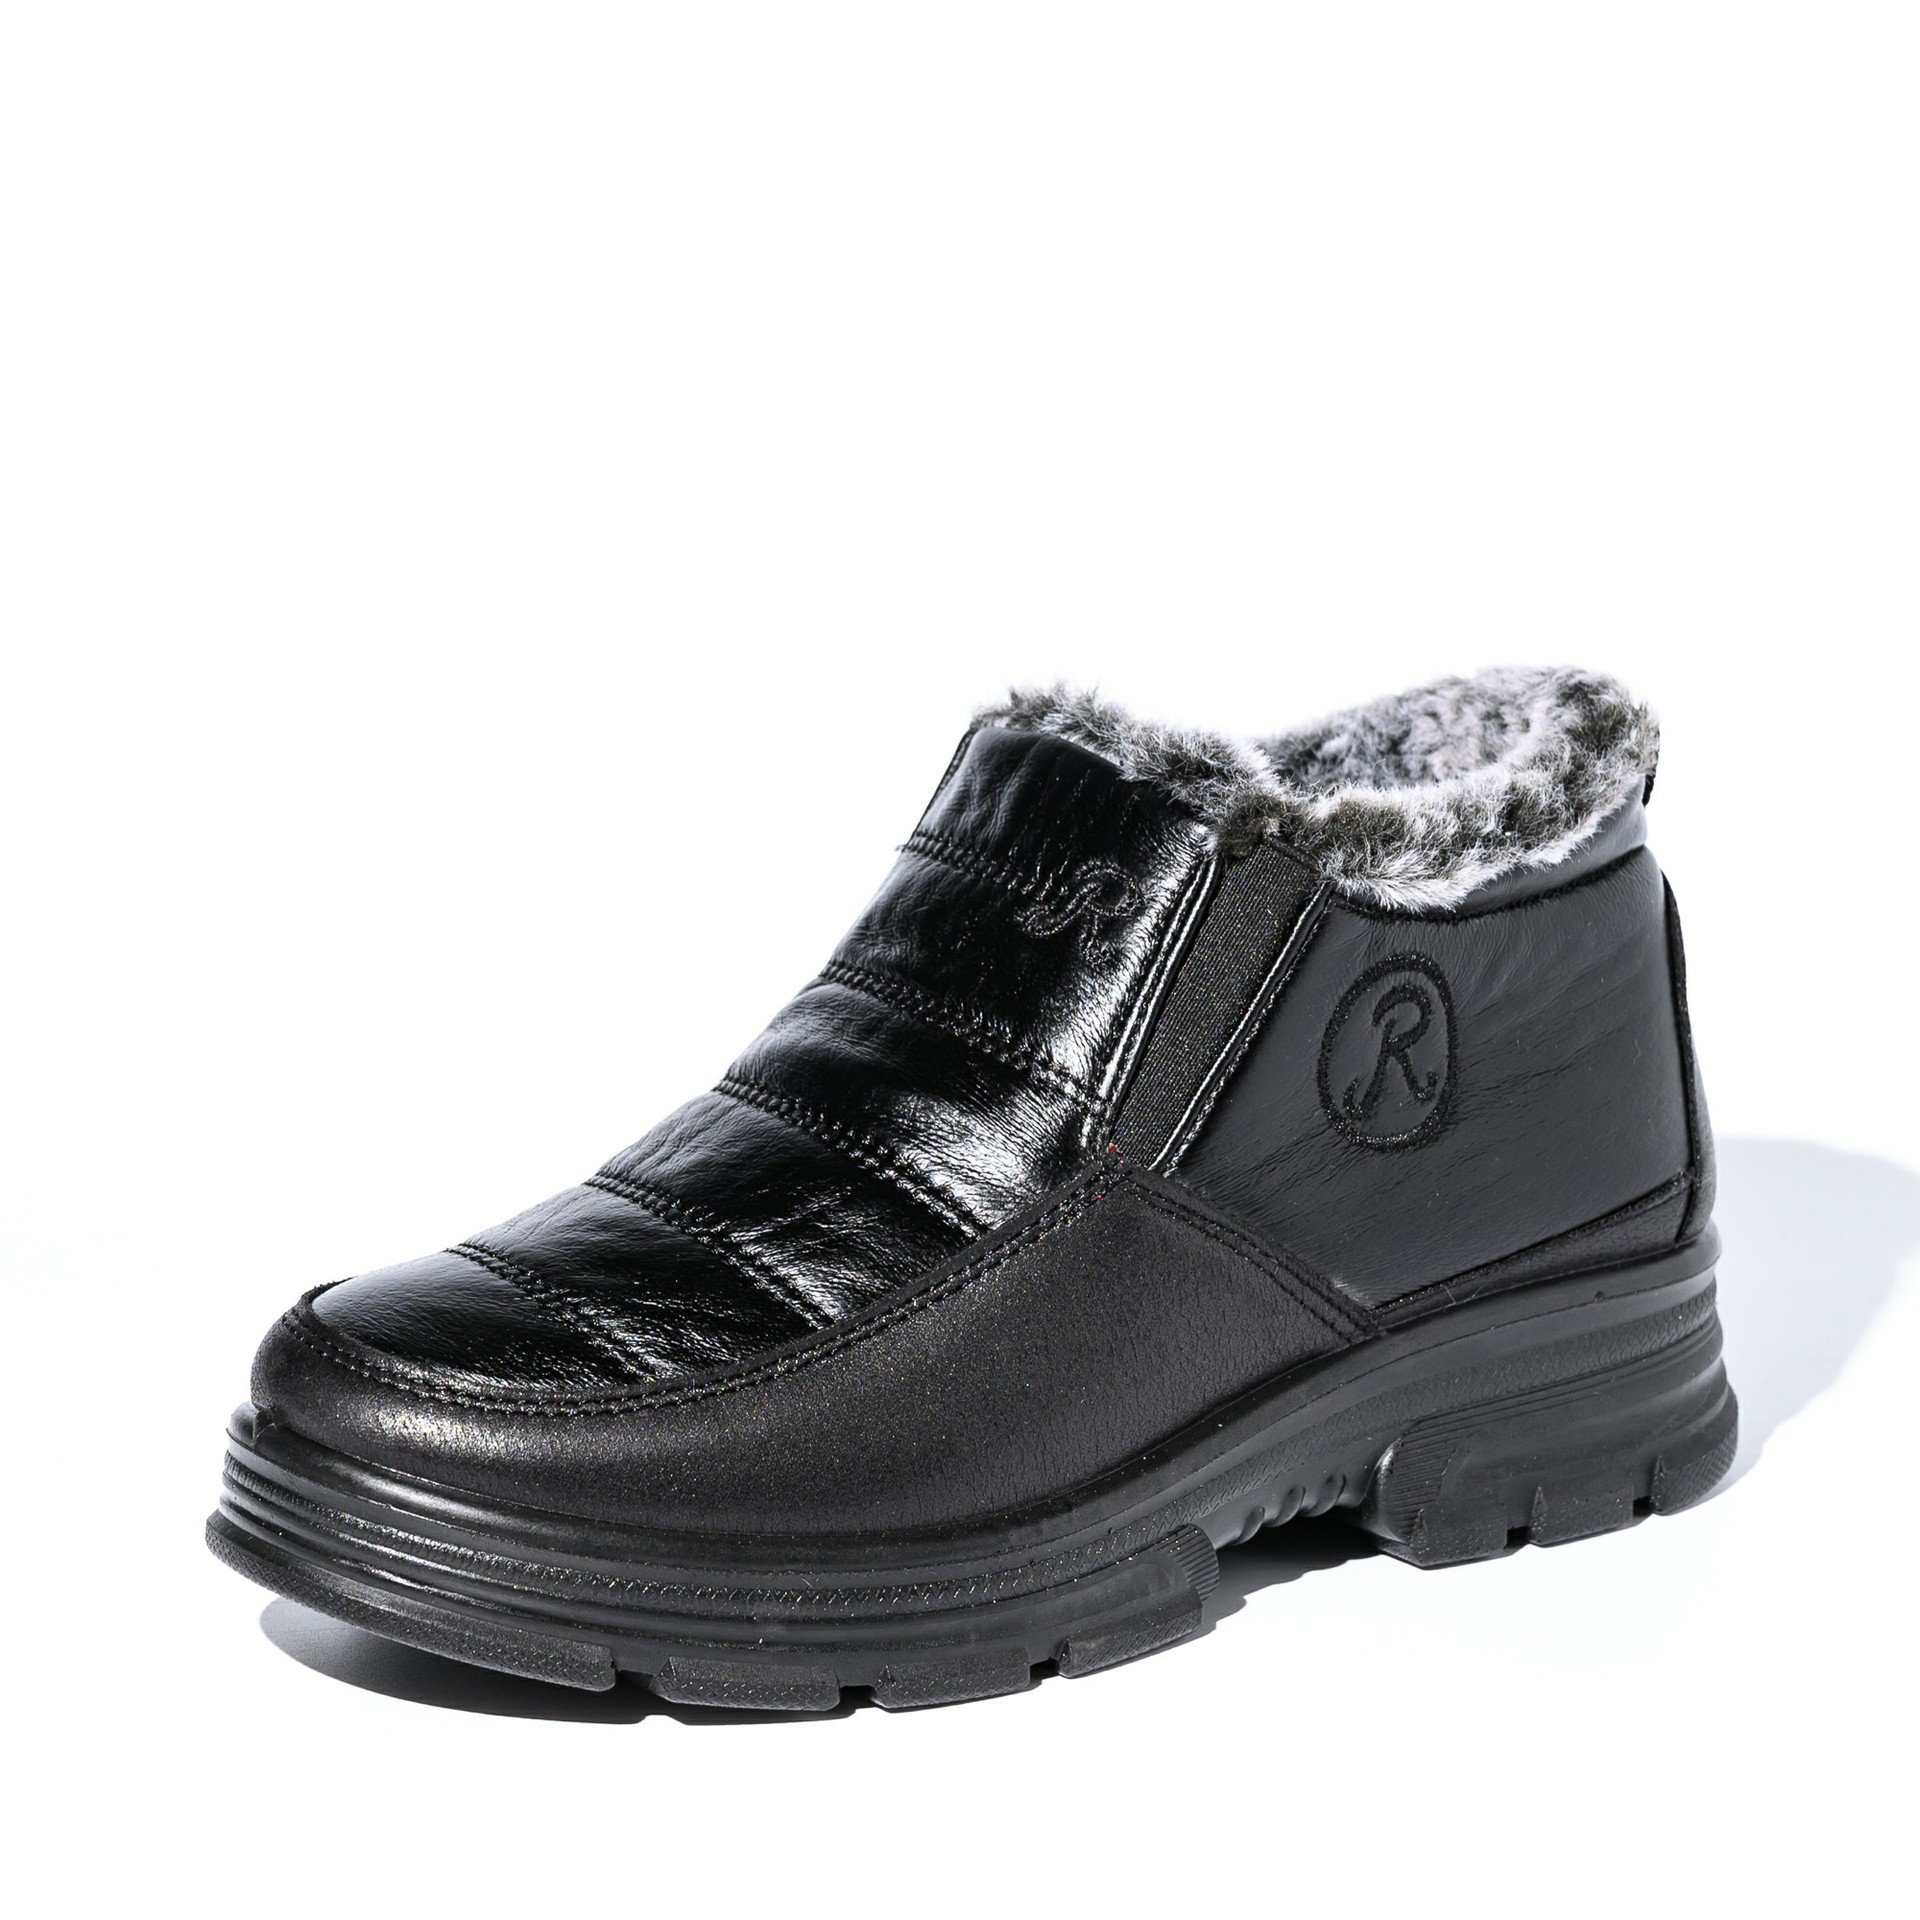 Women's Waterproof Cloth Large Size Snow Boots With Warm Lining